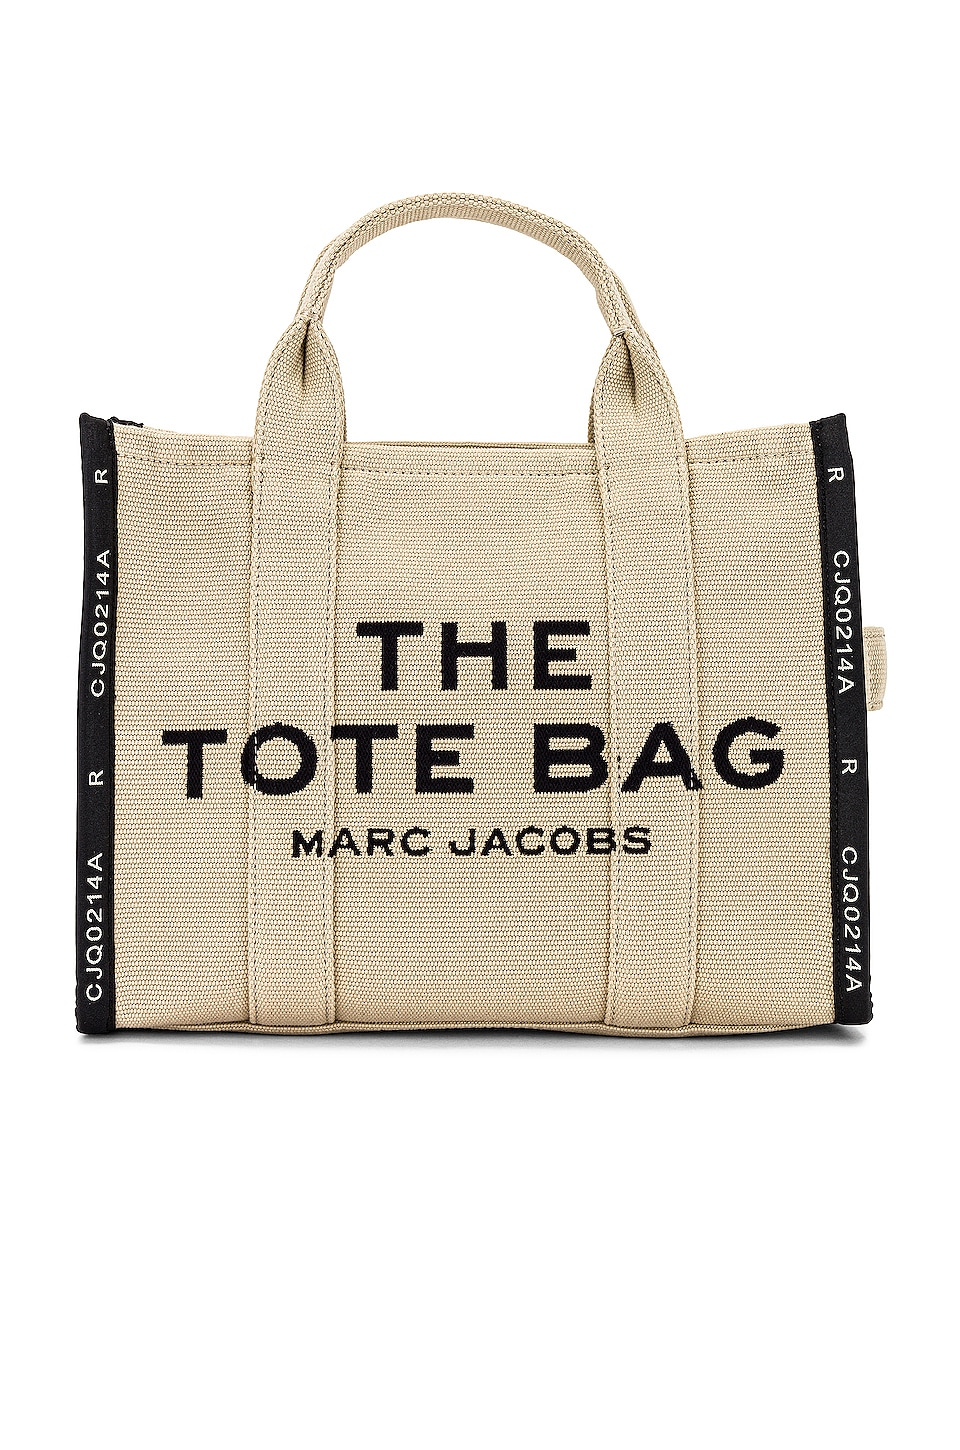 Marc Jacobs Small Traveler Tote in Warm Sand